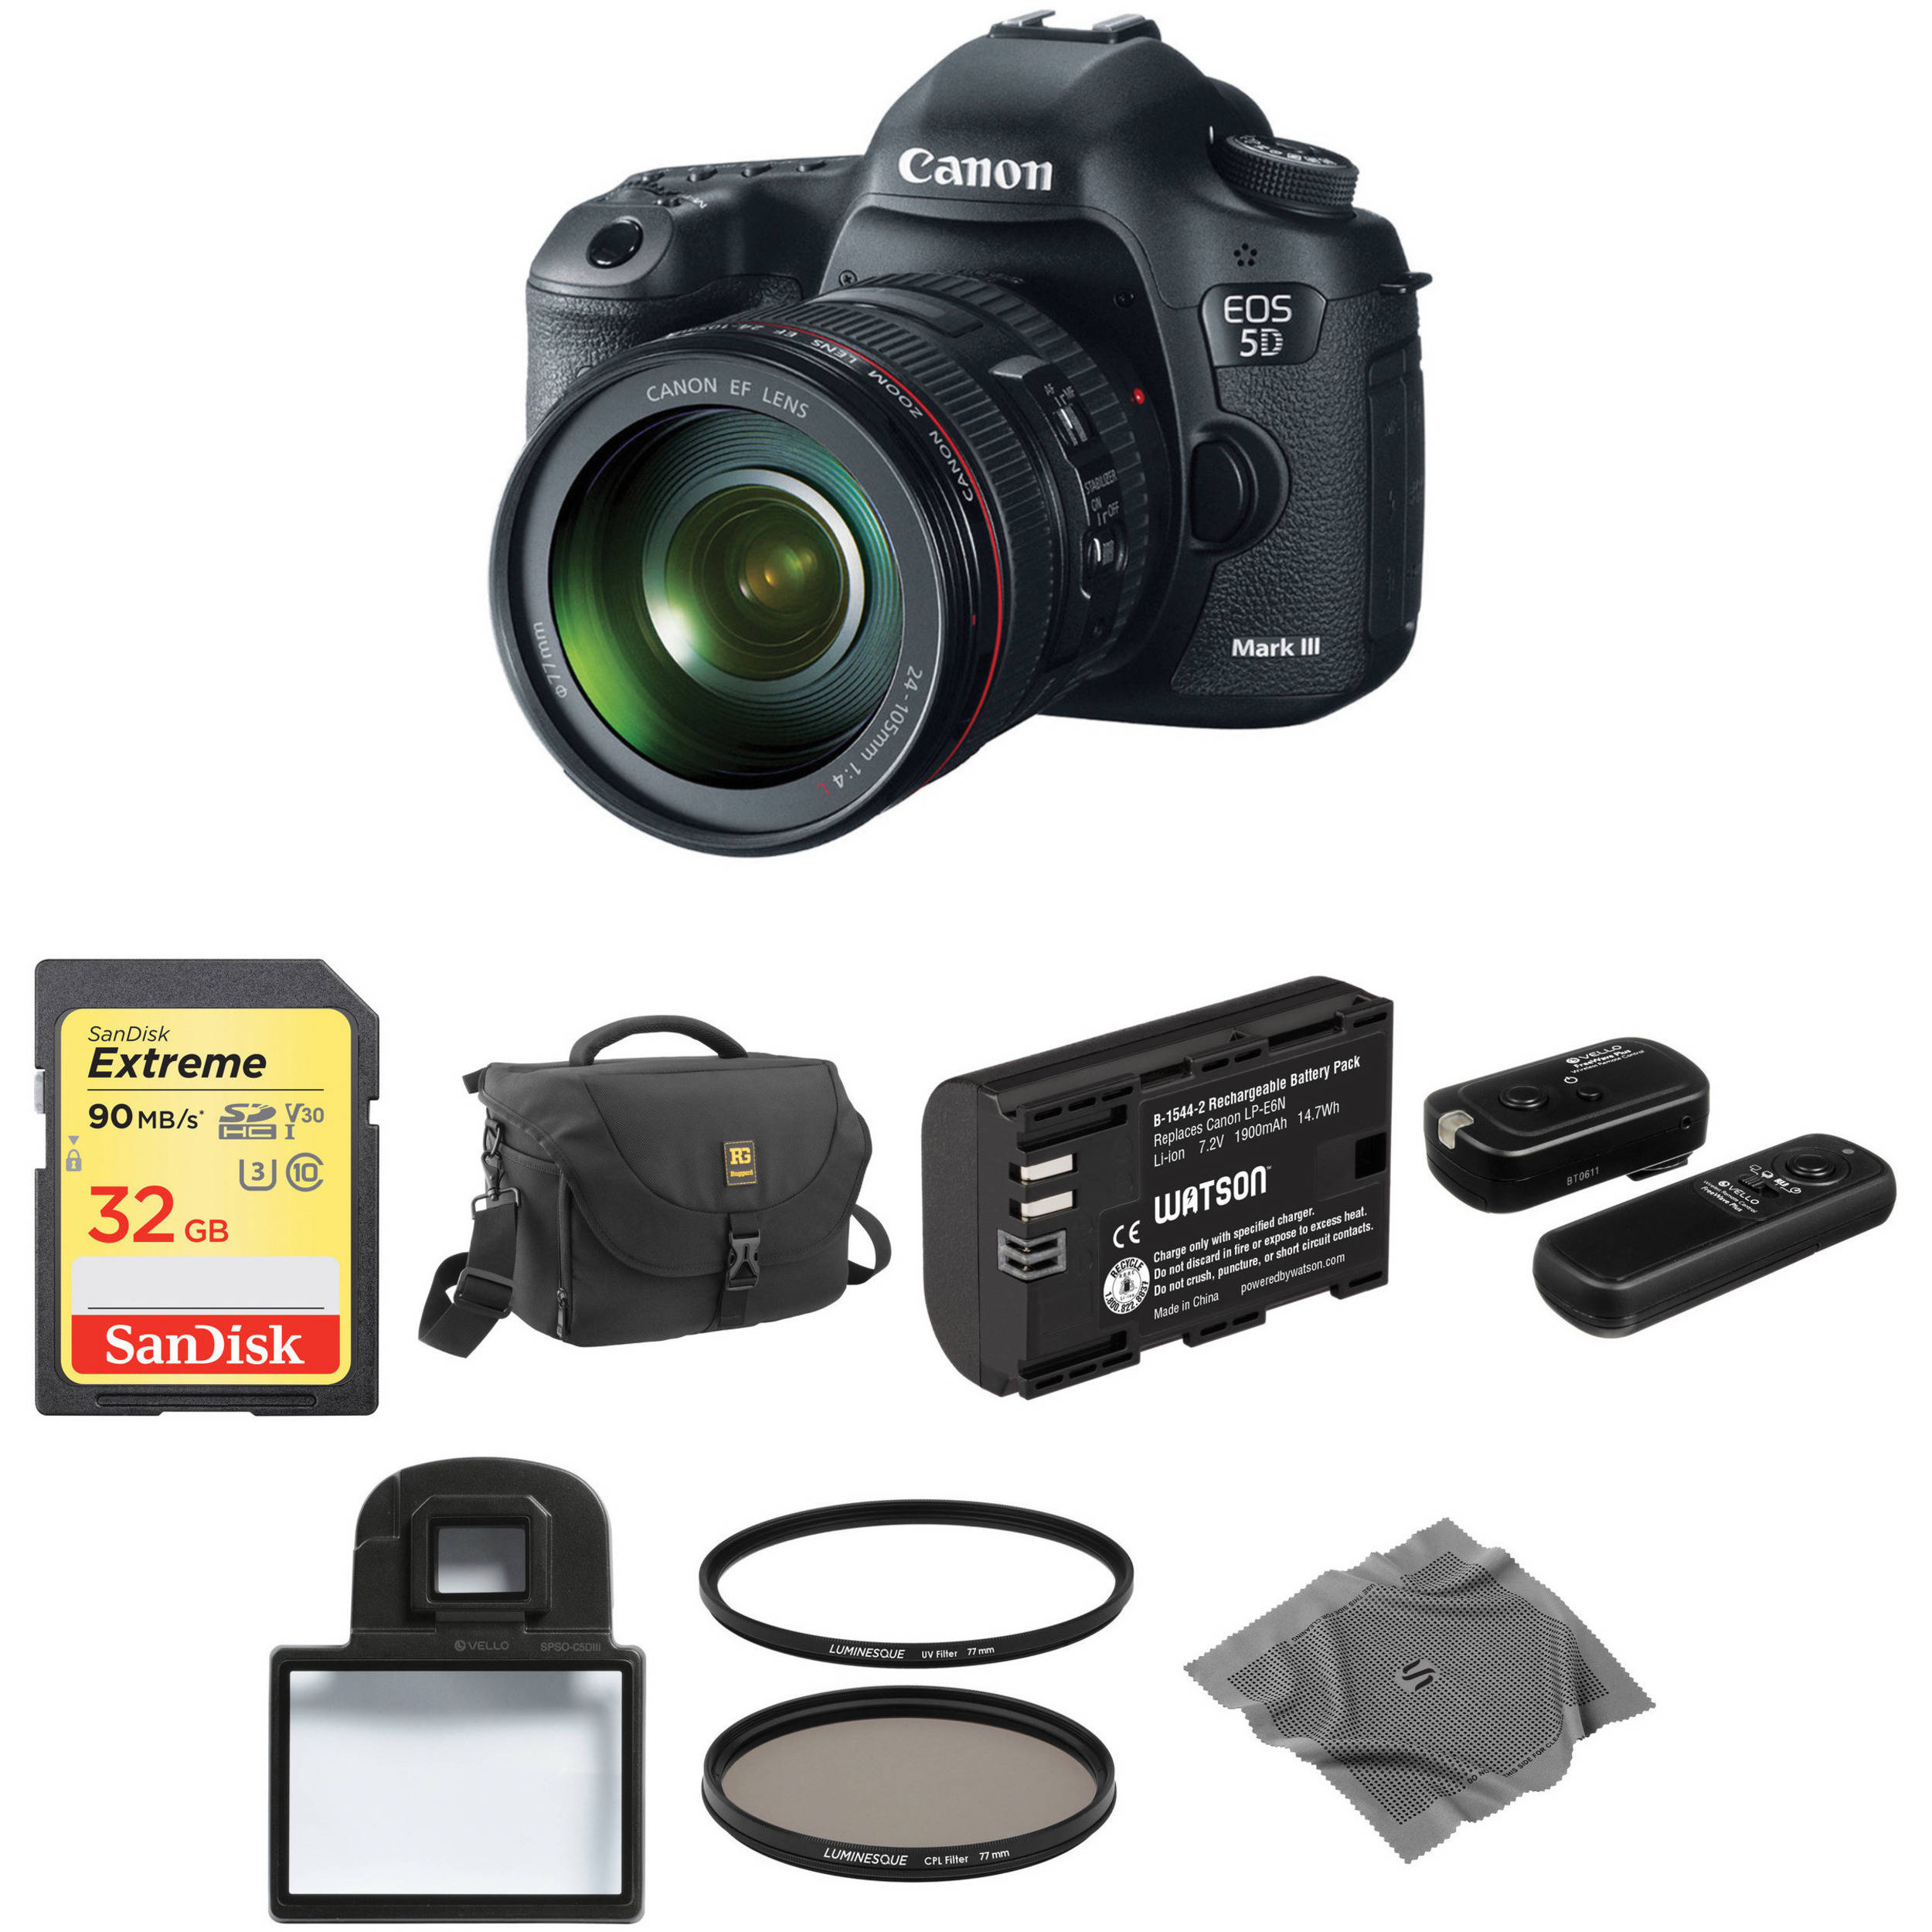 Canon EOS 5D Mark III DSLR Camera with 24-105mm f/4L Lens ...